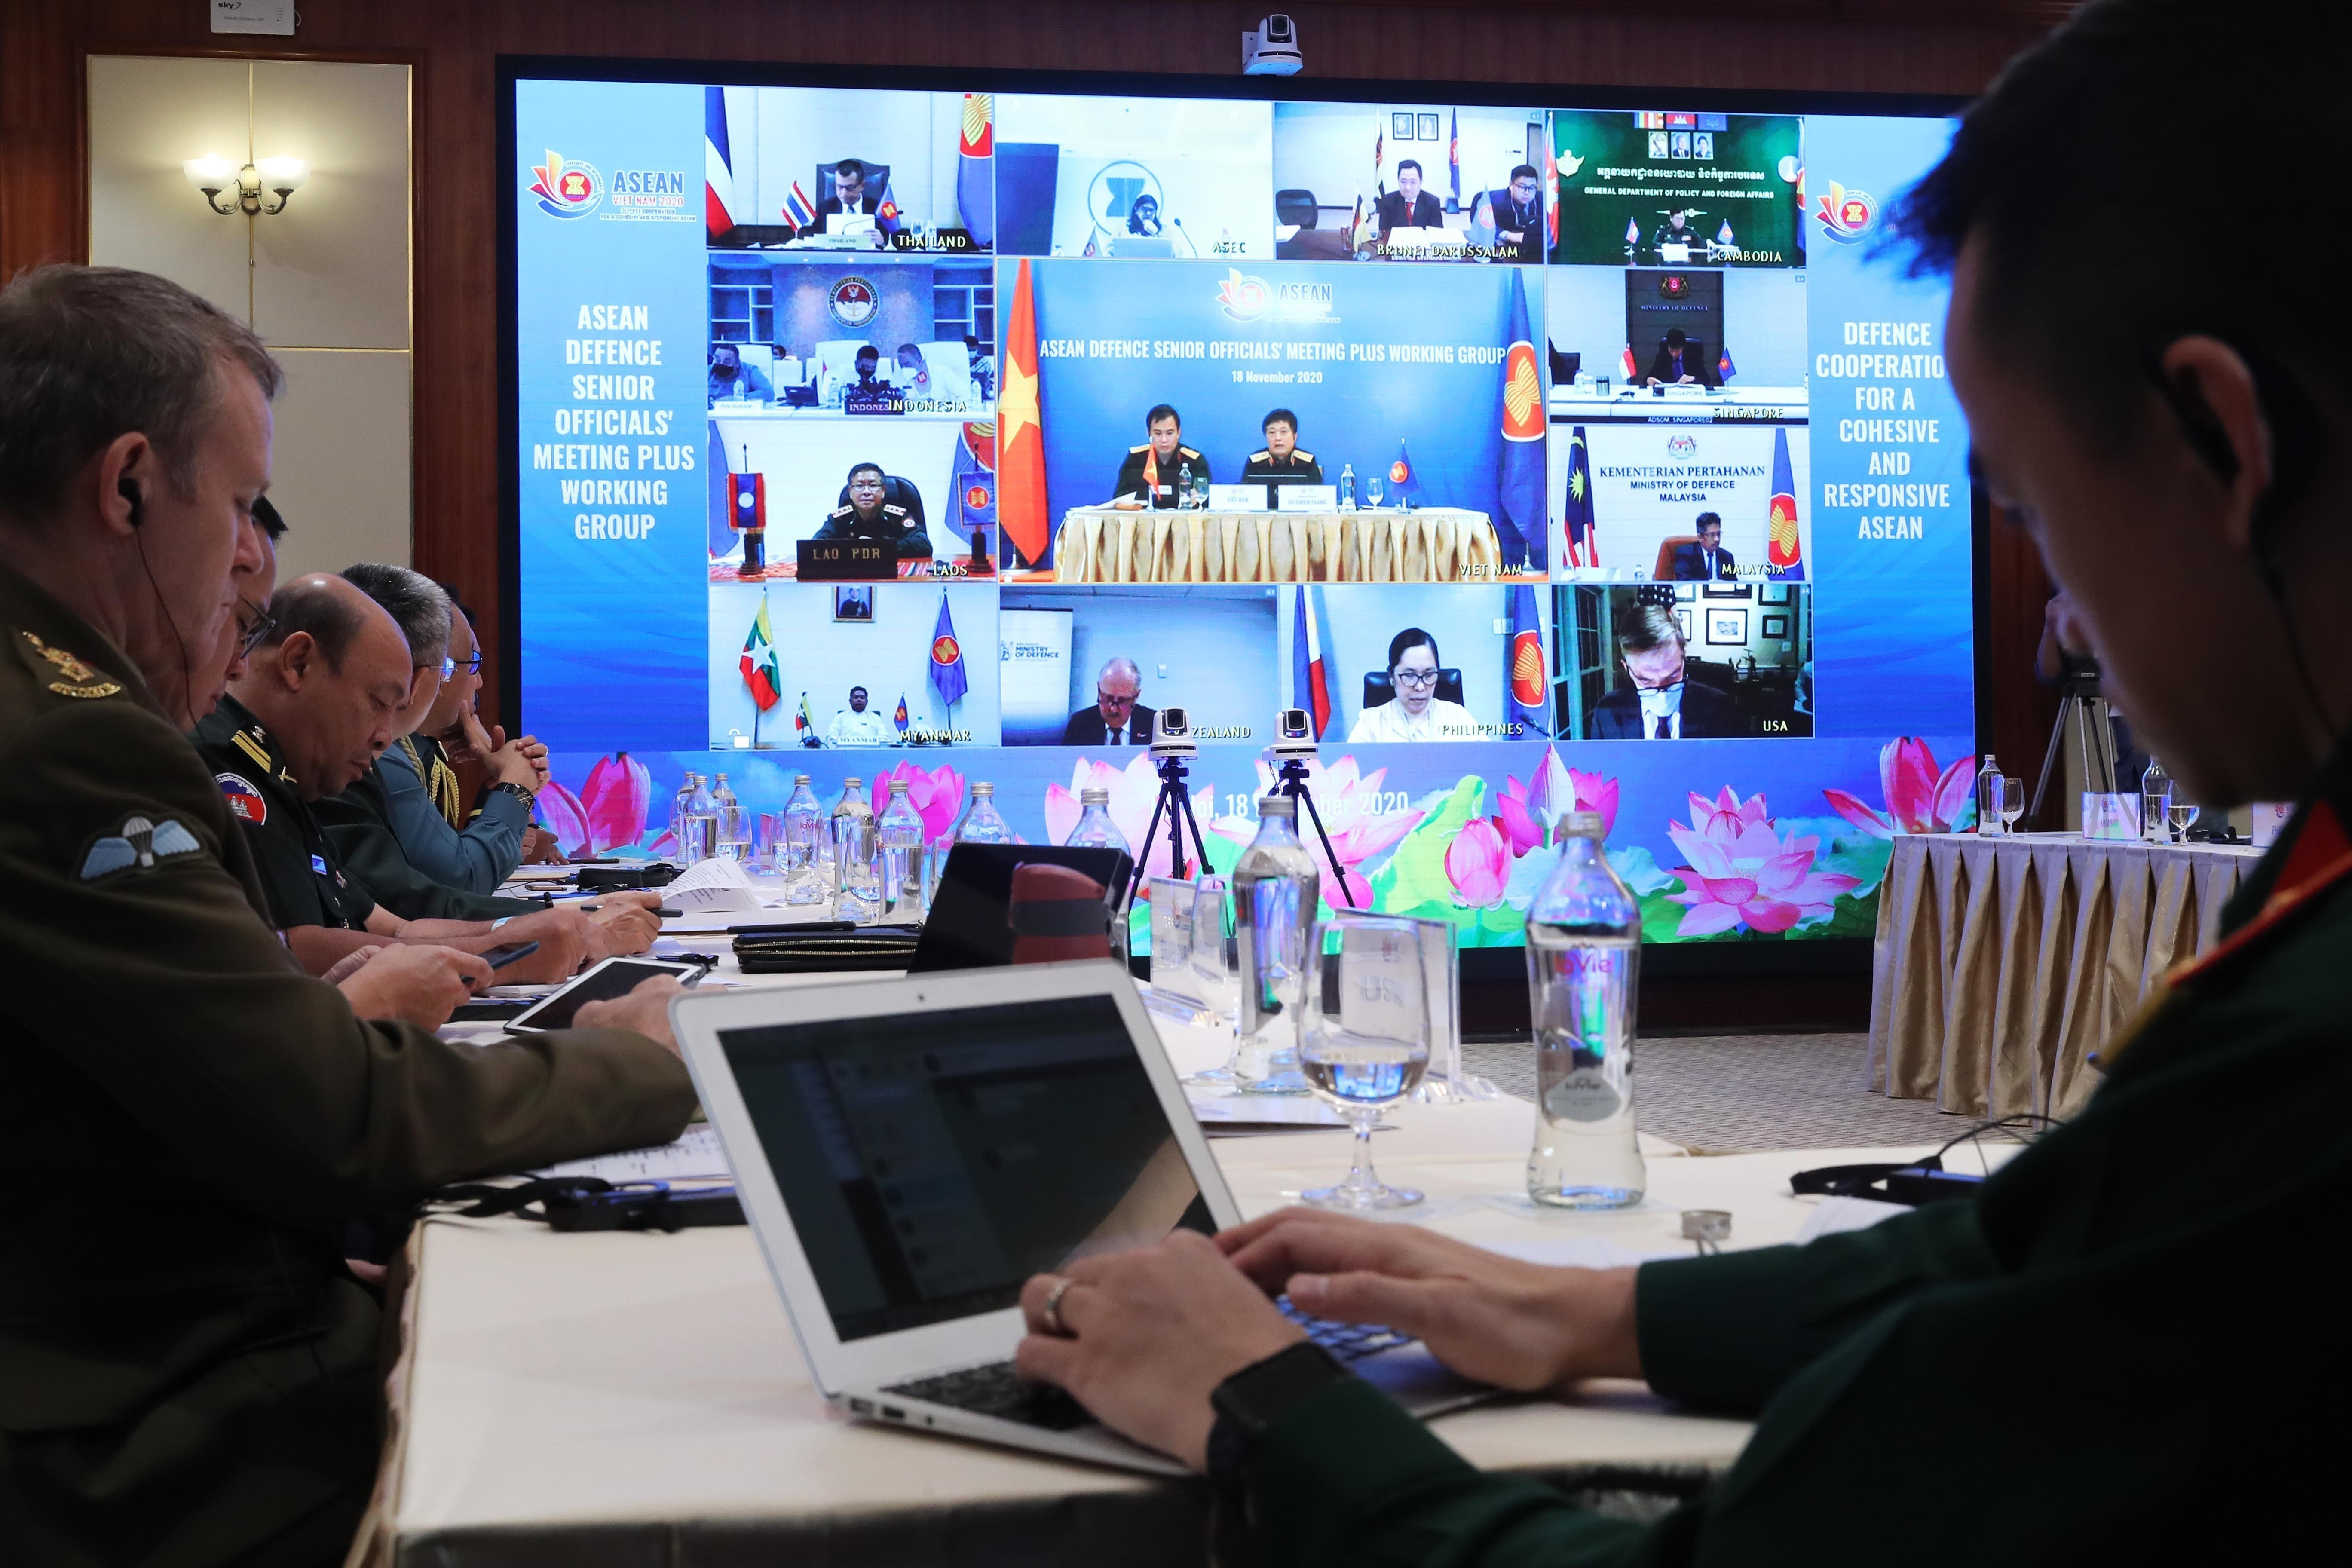 ASEAN 2020: ASEAN Defence Senior Officials' Meeting Plus Working Group hinh anh 6